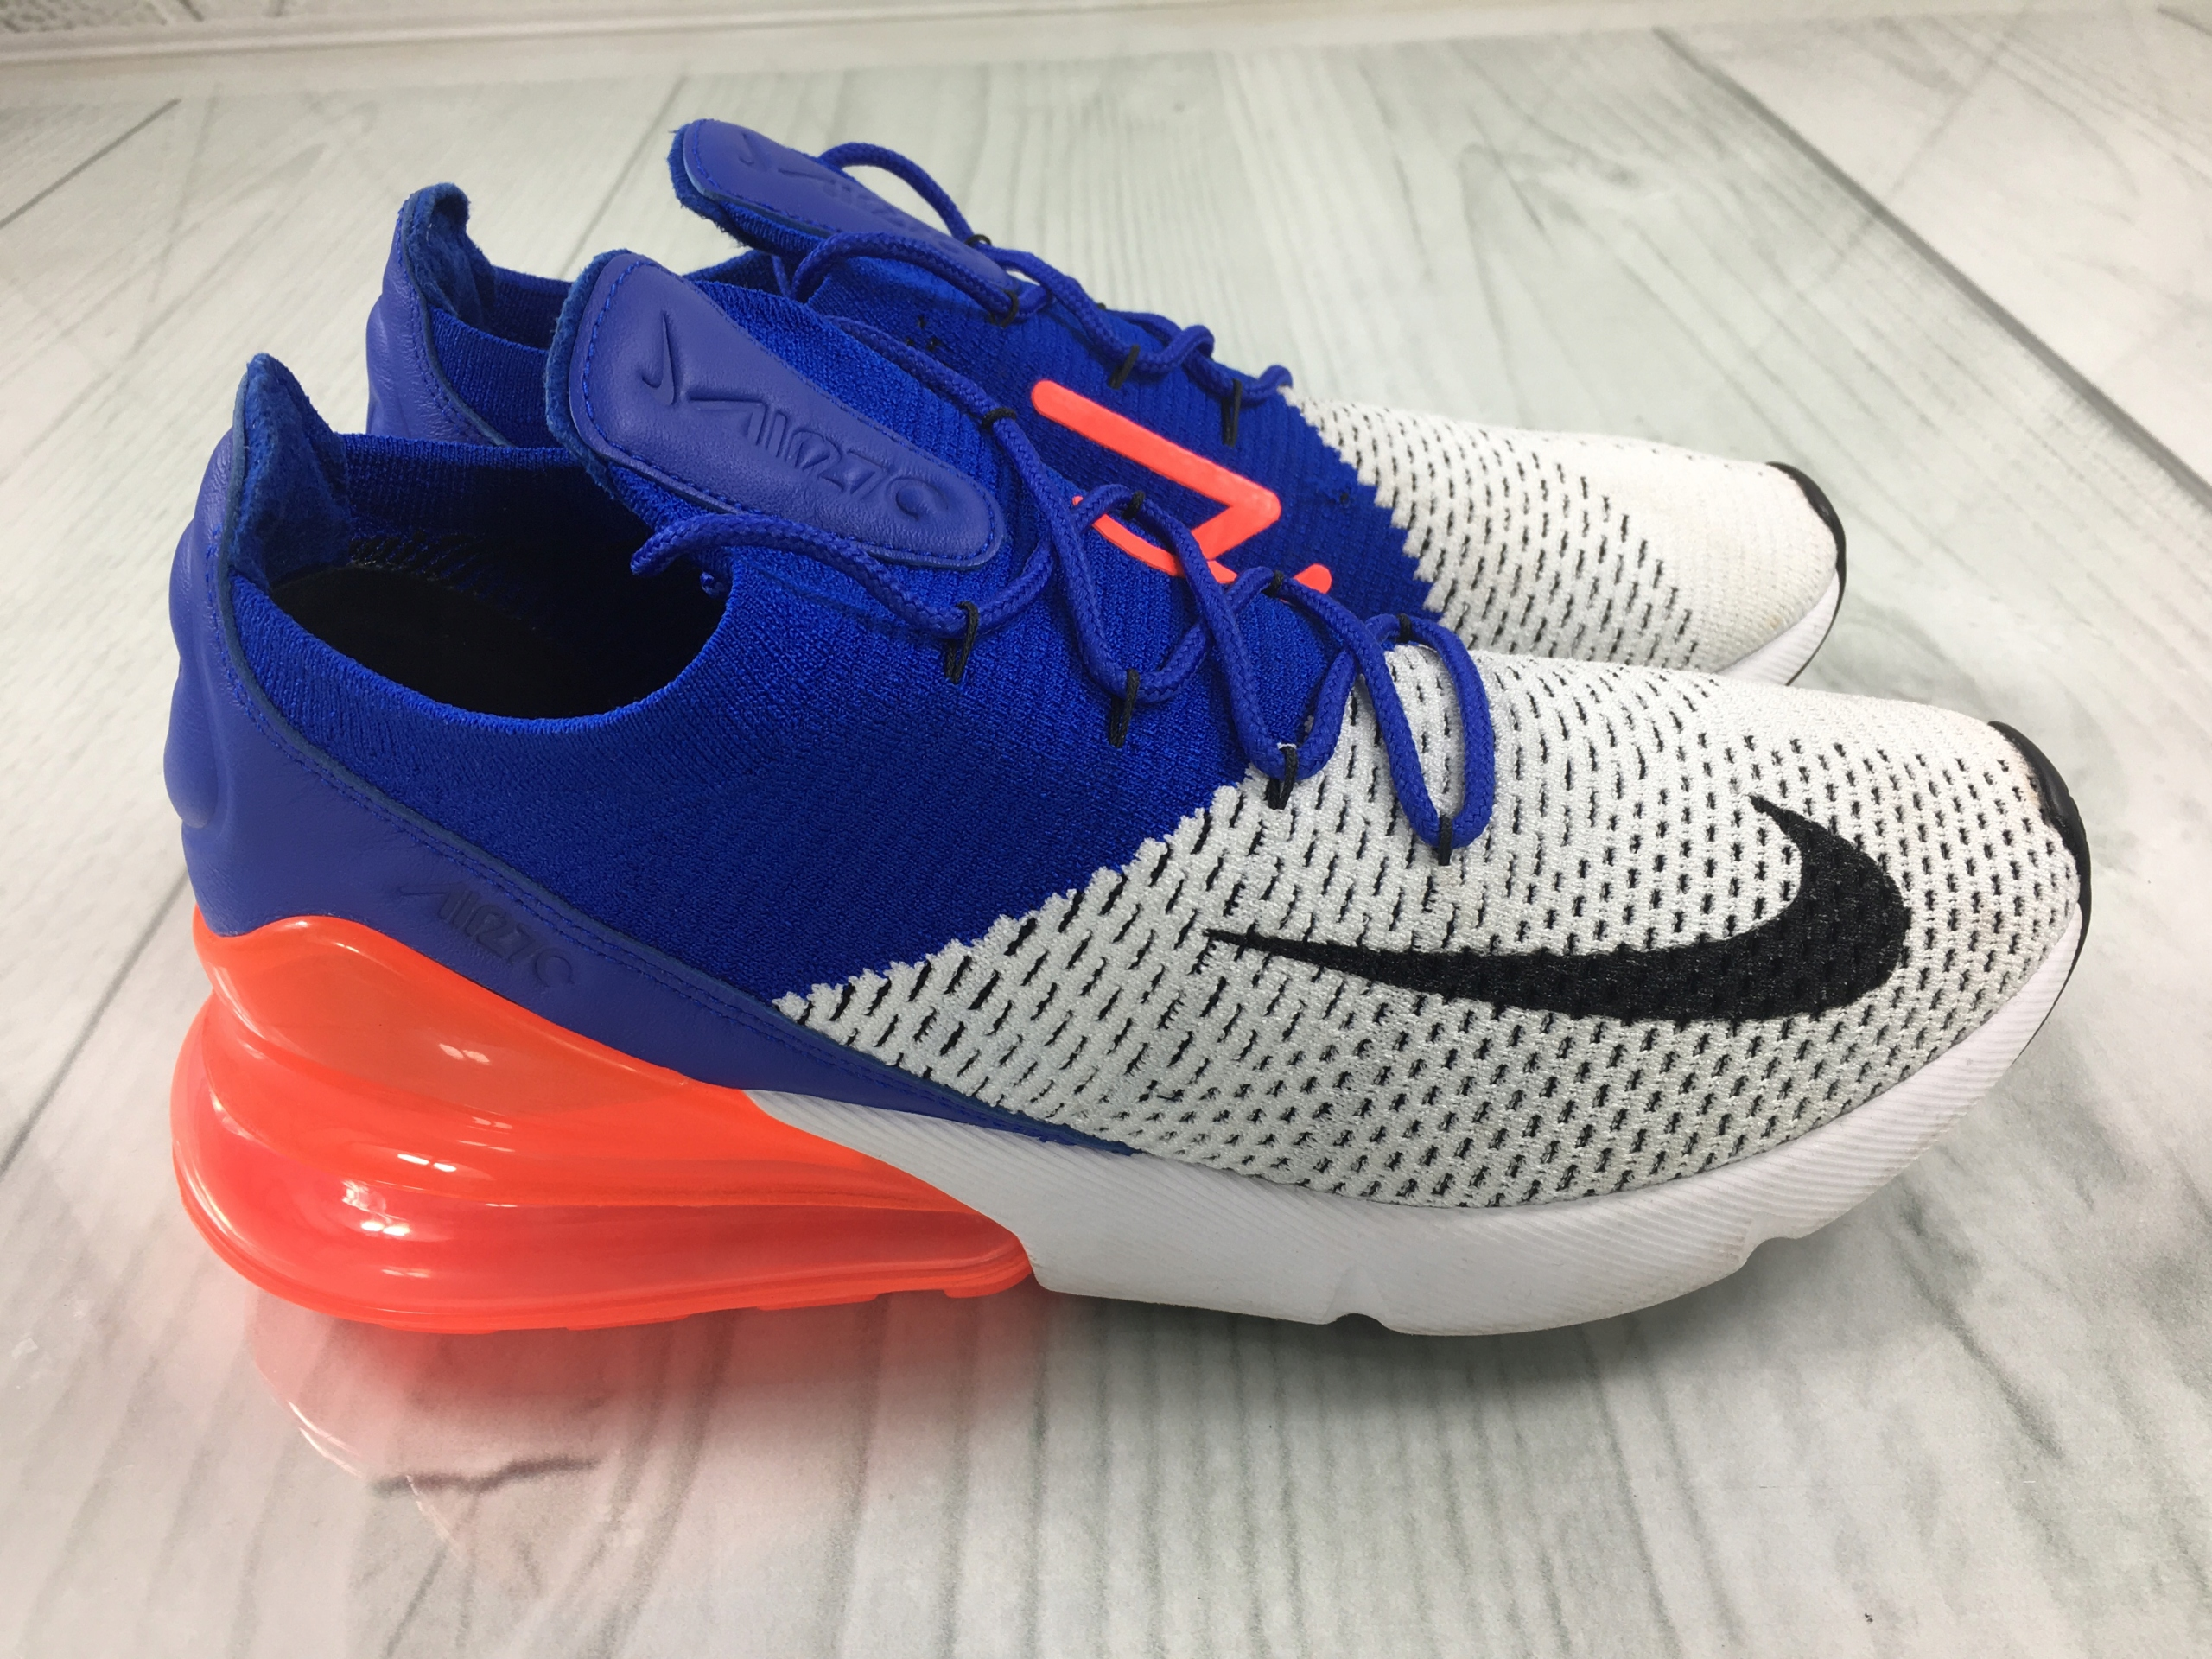 BUTY NIKE AIR MAX 270 FLYKNIT R.42.5 AO1023 101